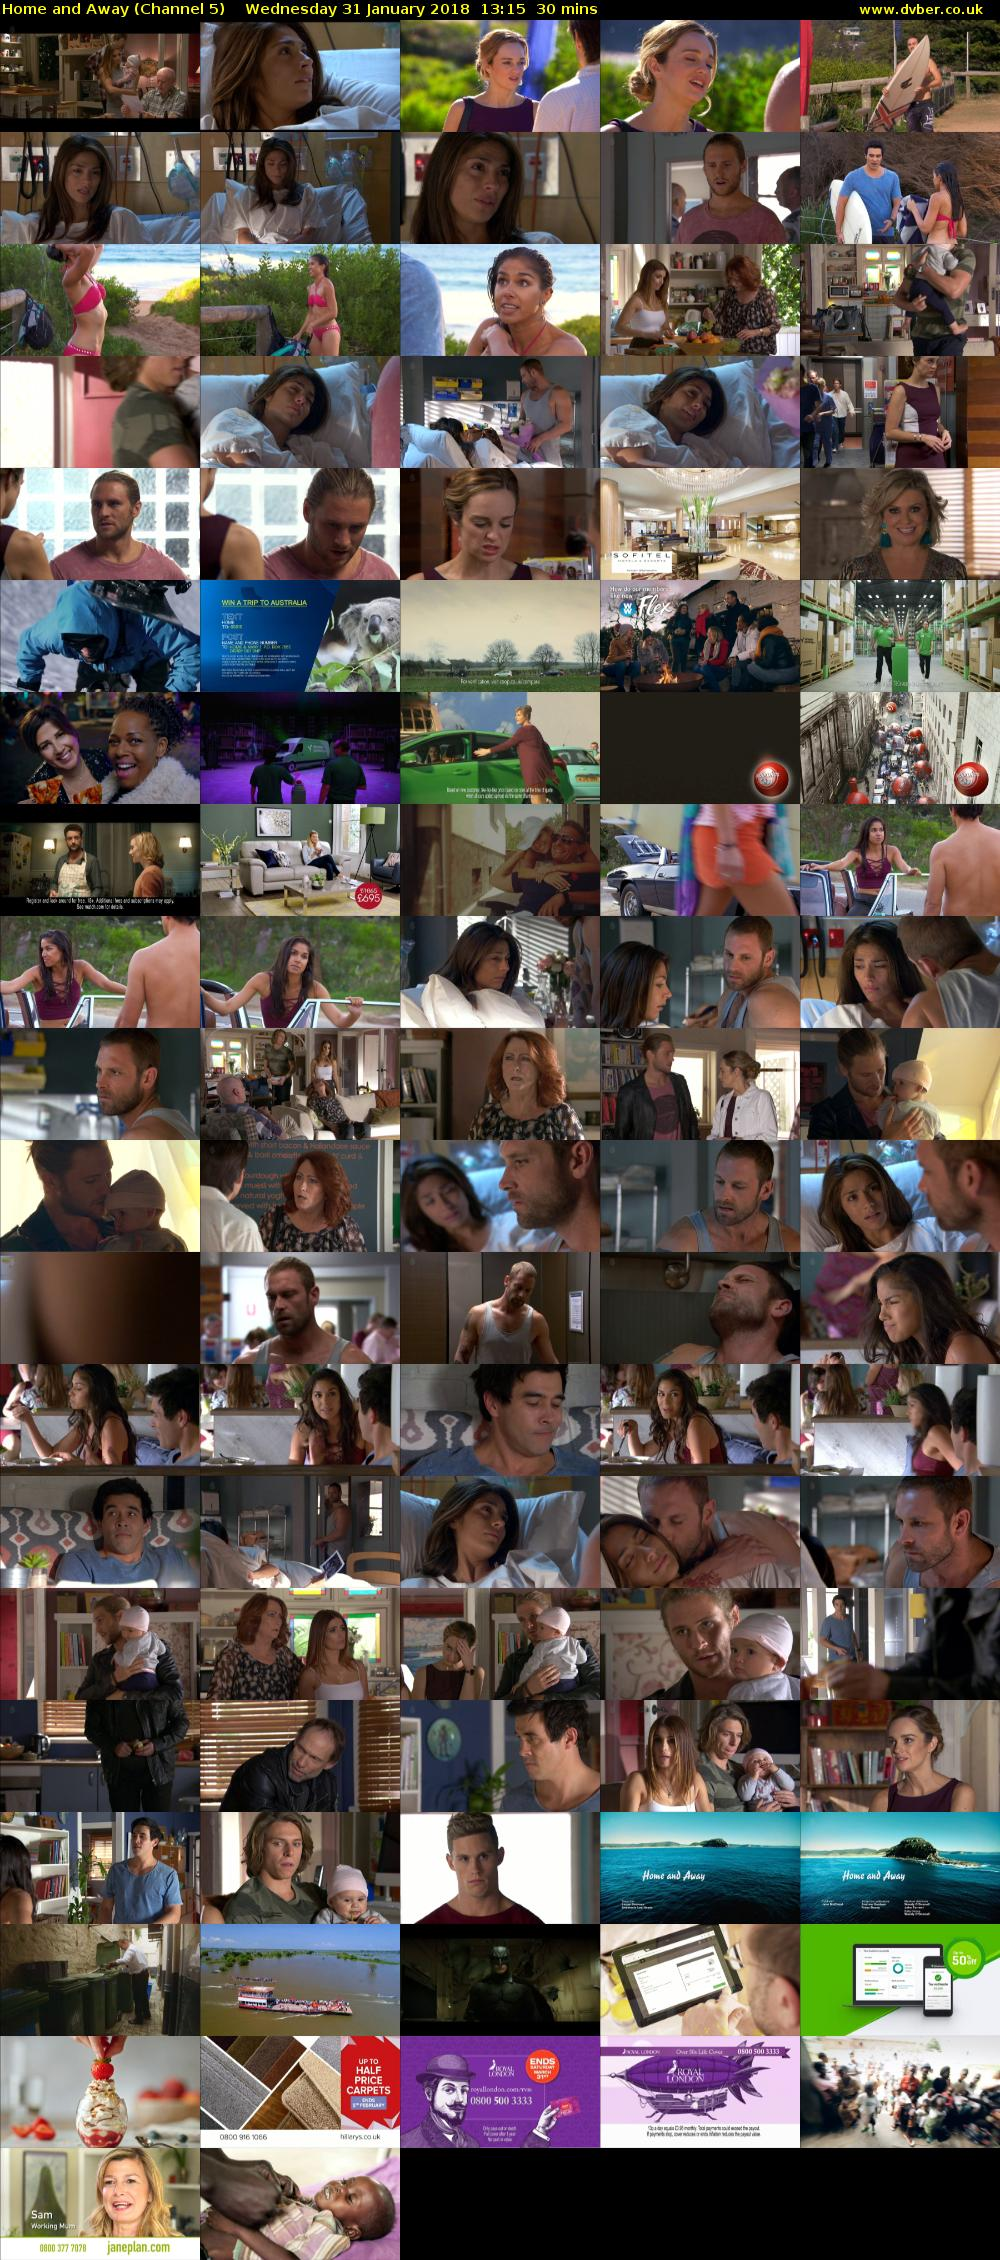 Home and Away (Channel 5) - 2018-01-31-1315